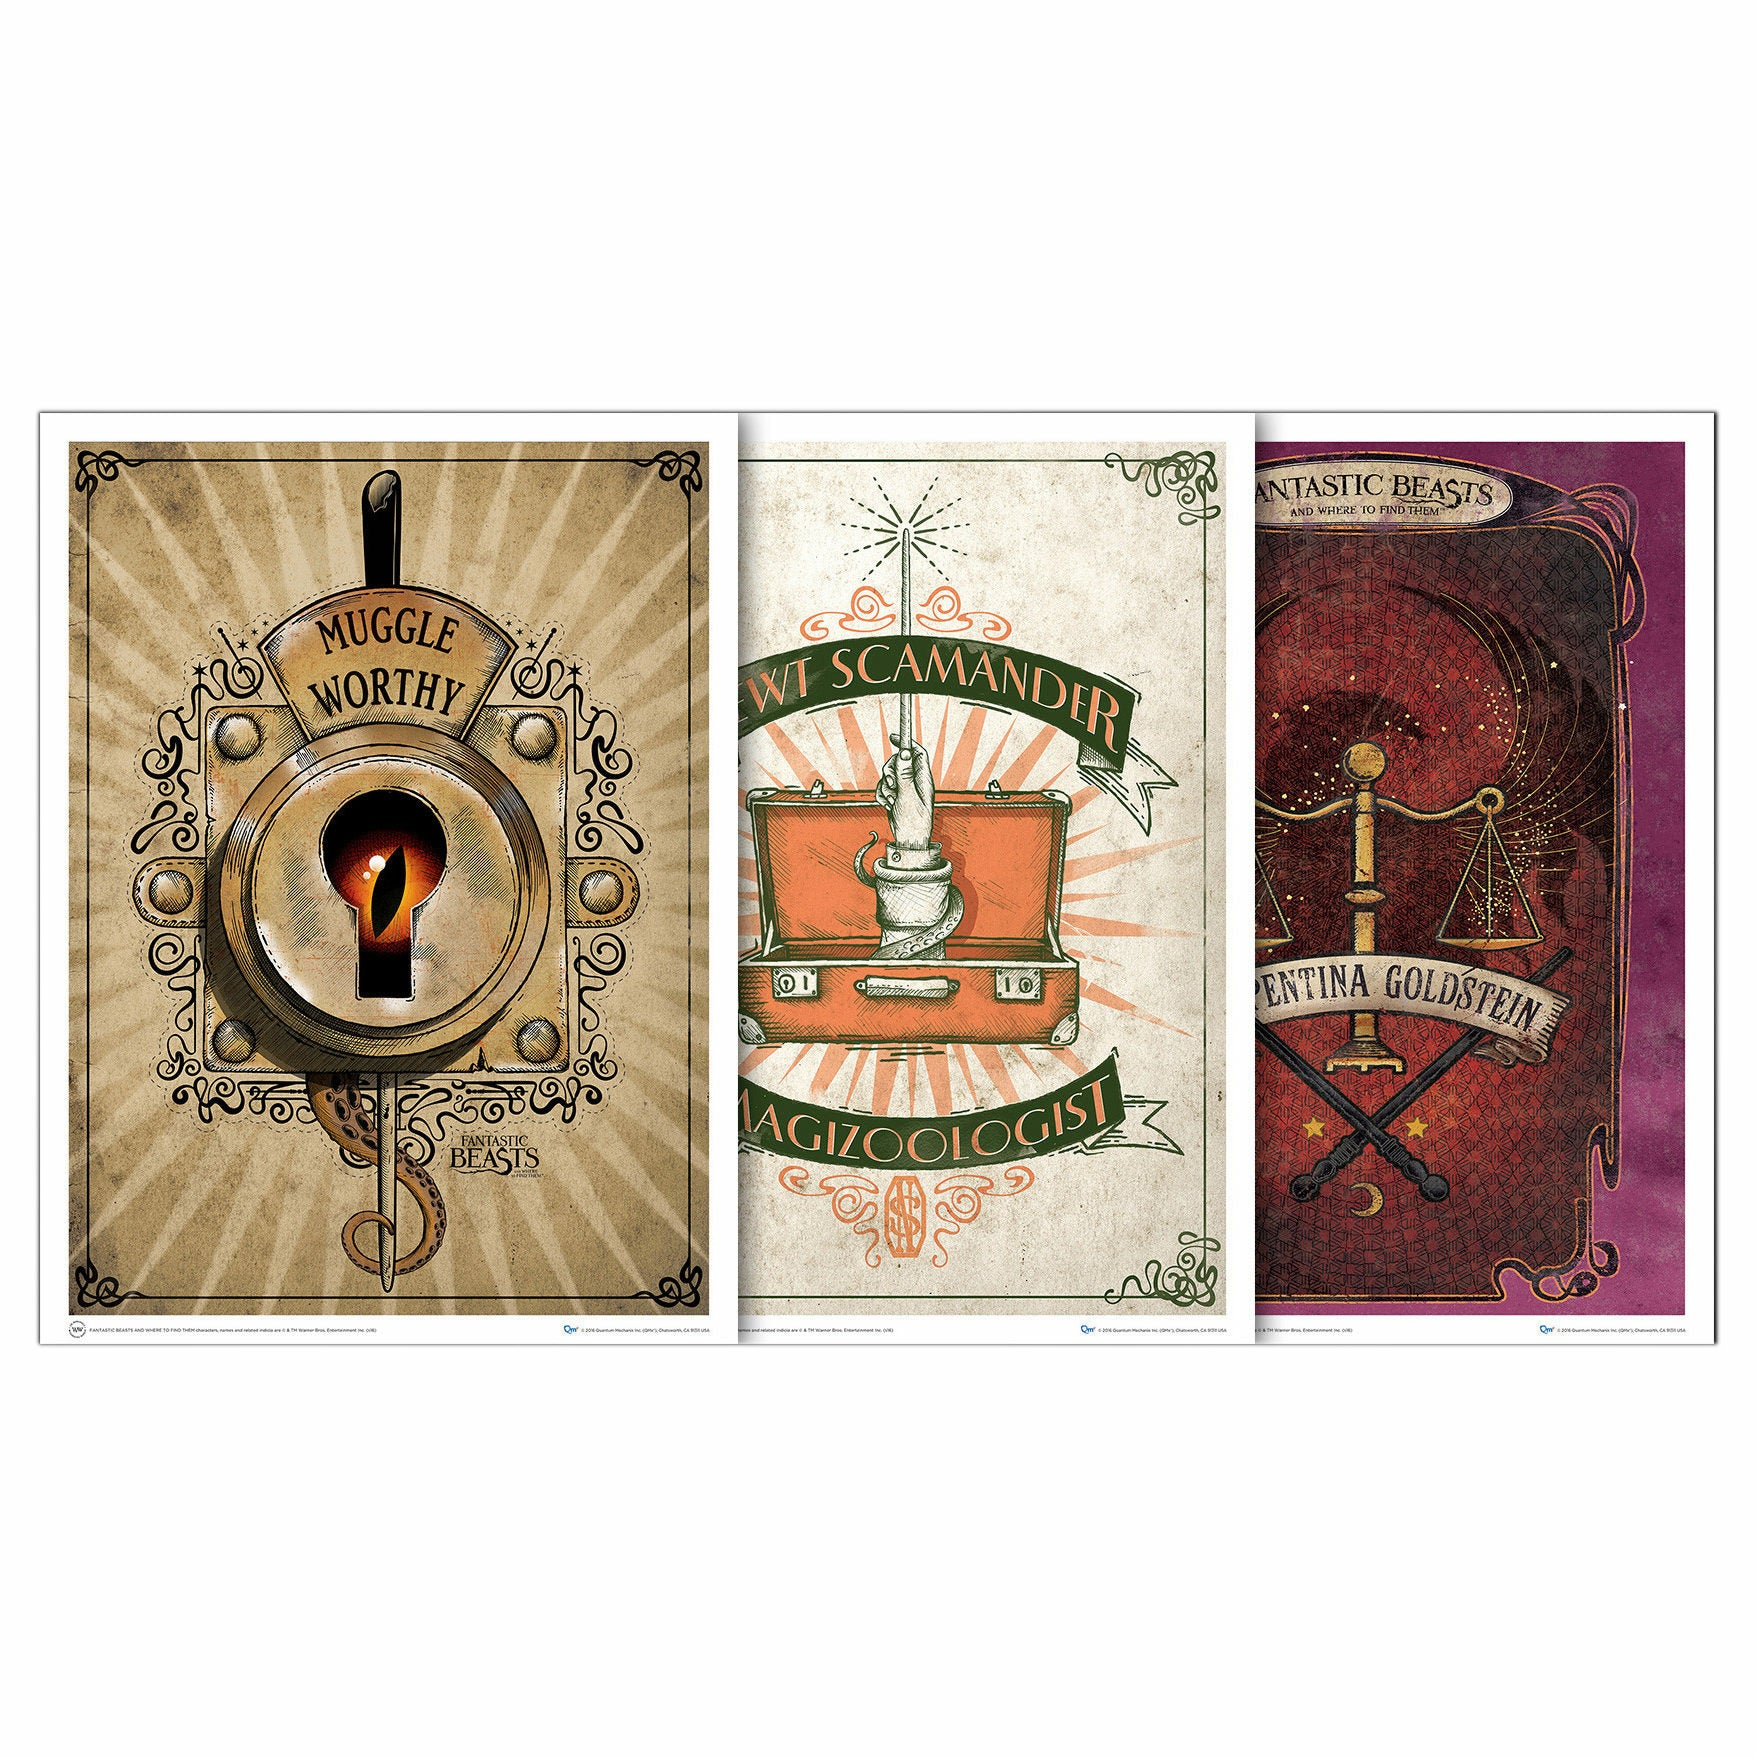 Fantastic Beasts and Where to Find Them Set 1 Art Print Posters Set of 3